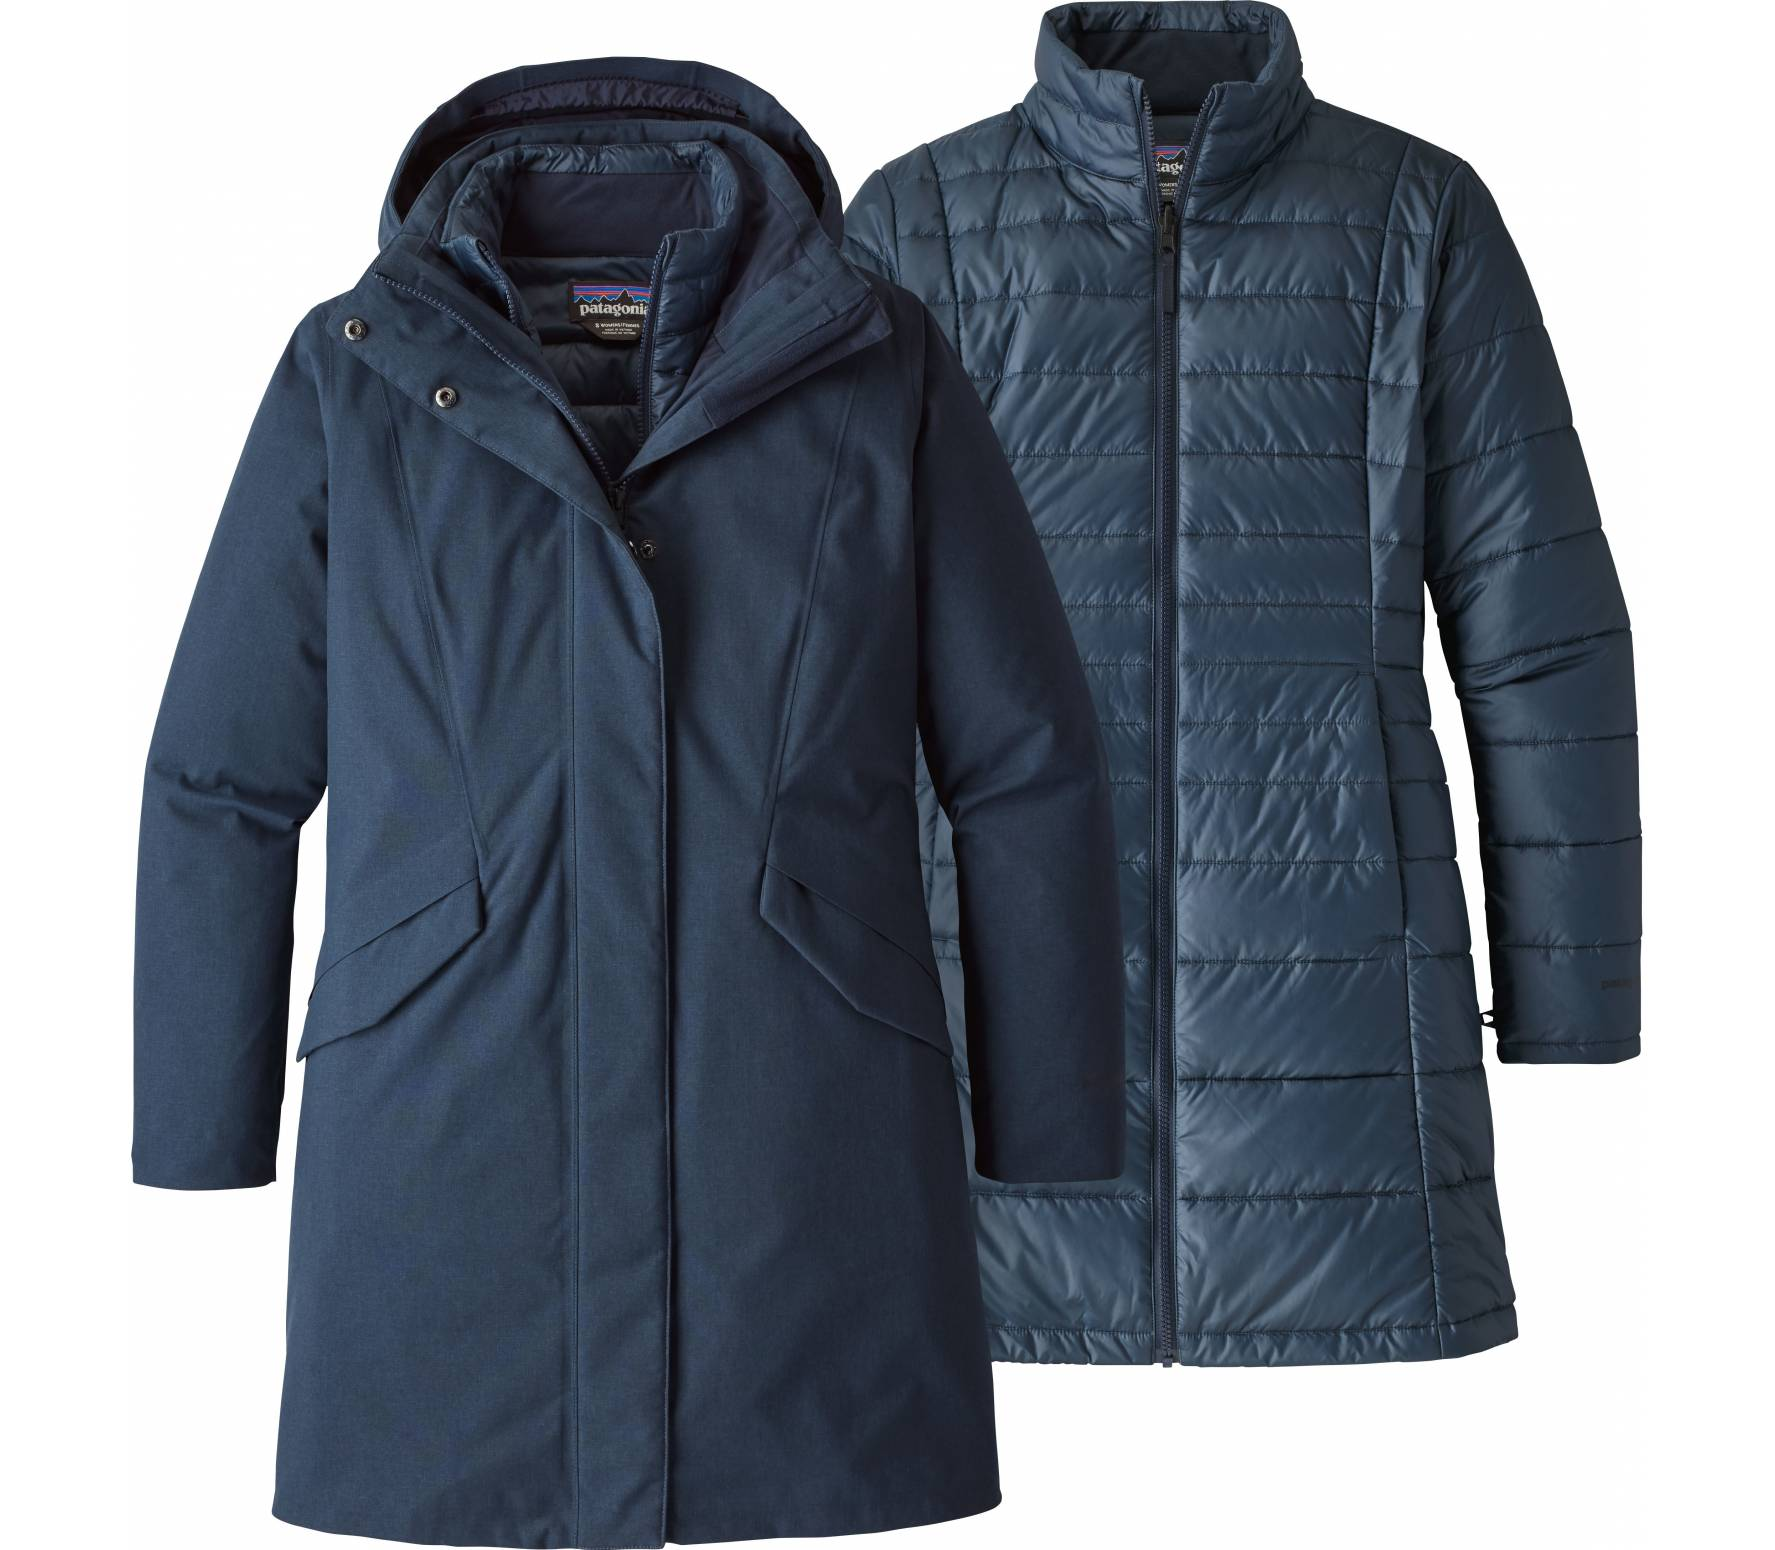 Patagonia Vosque 3-in-1 Dam insulating jacket M blå